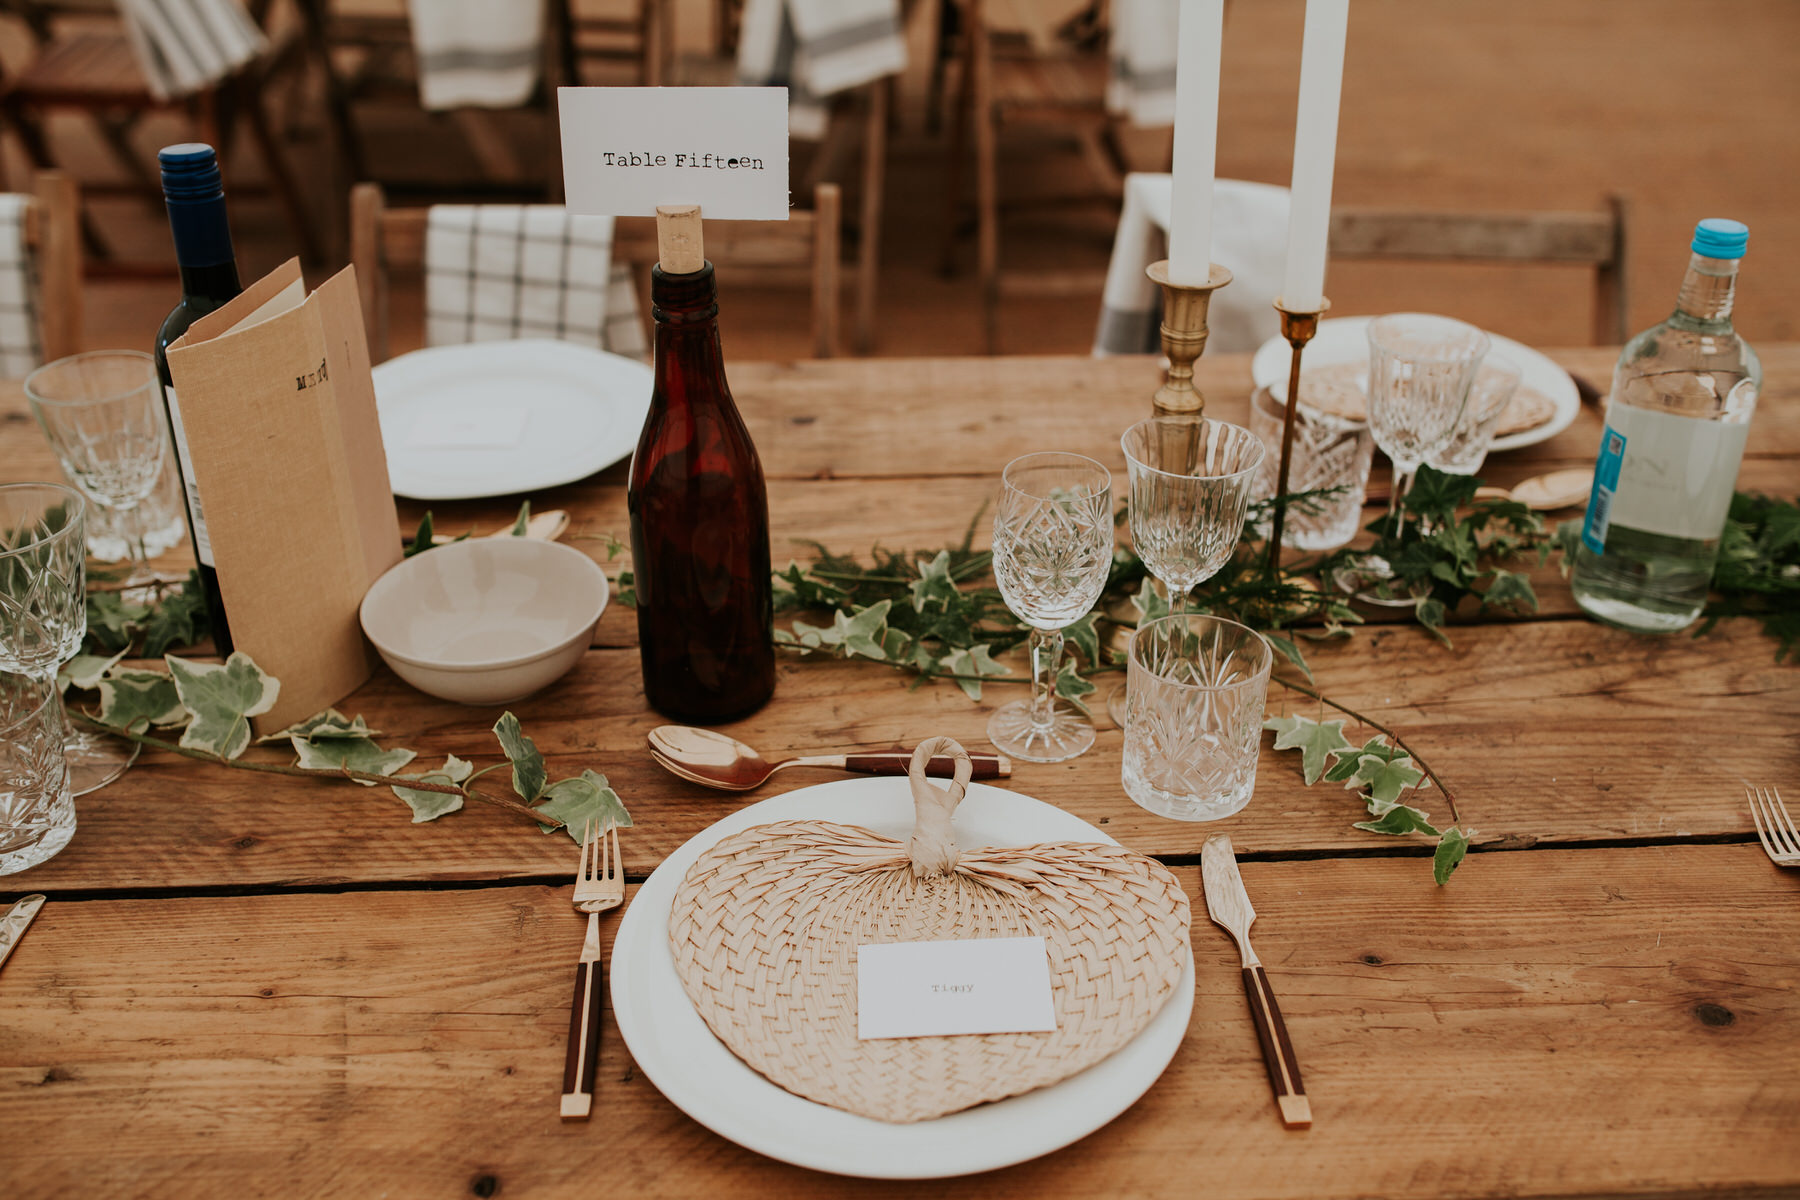 65 festival woodland Wedding table details.jpg